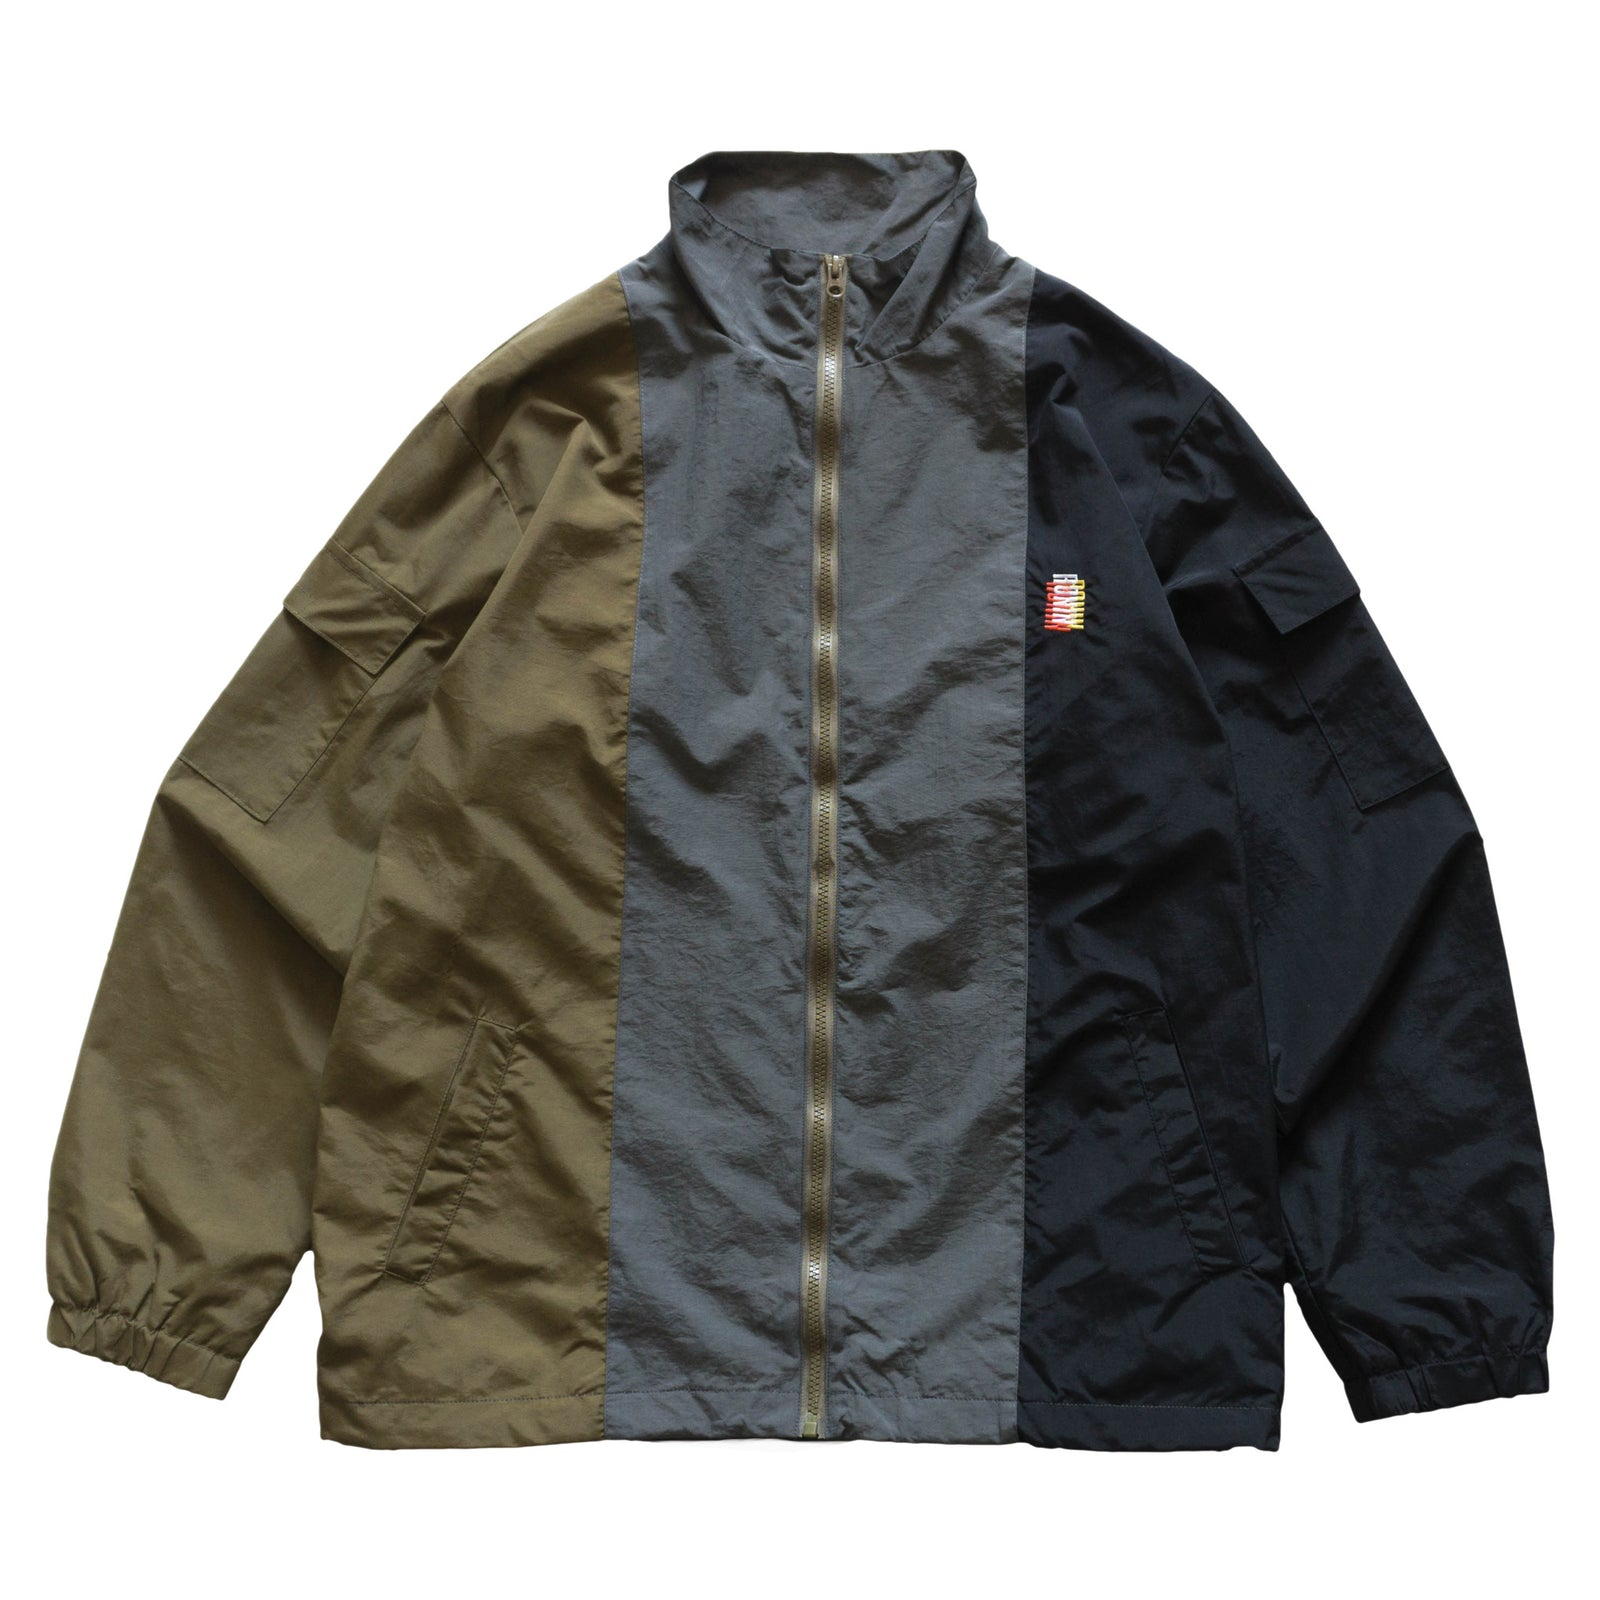 Commando Jacket v.2 - Olive | Grey | Black